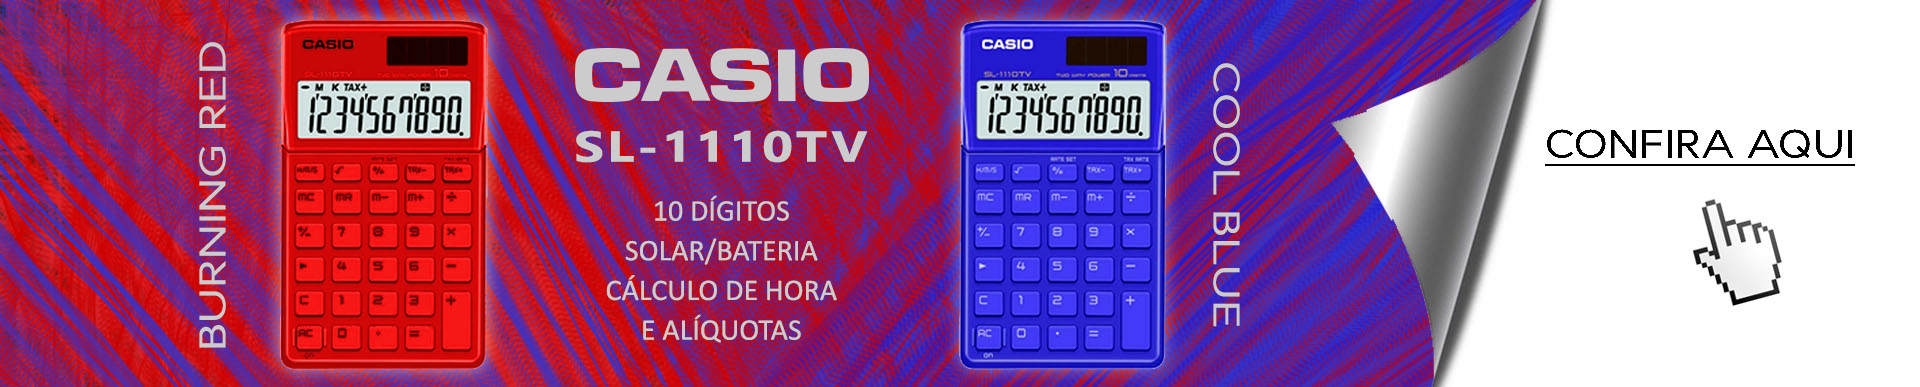 Casio SL-1110TV